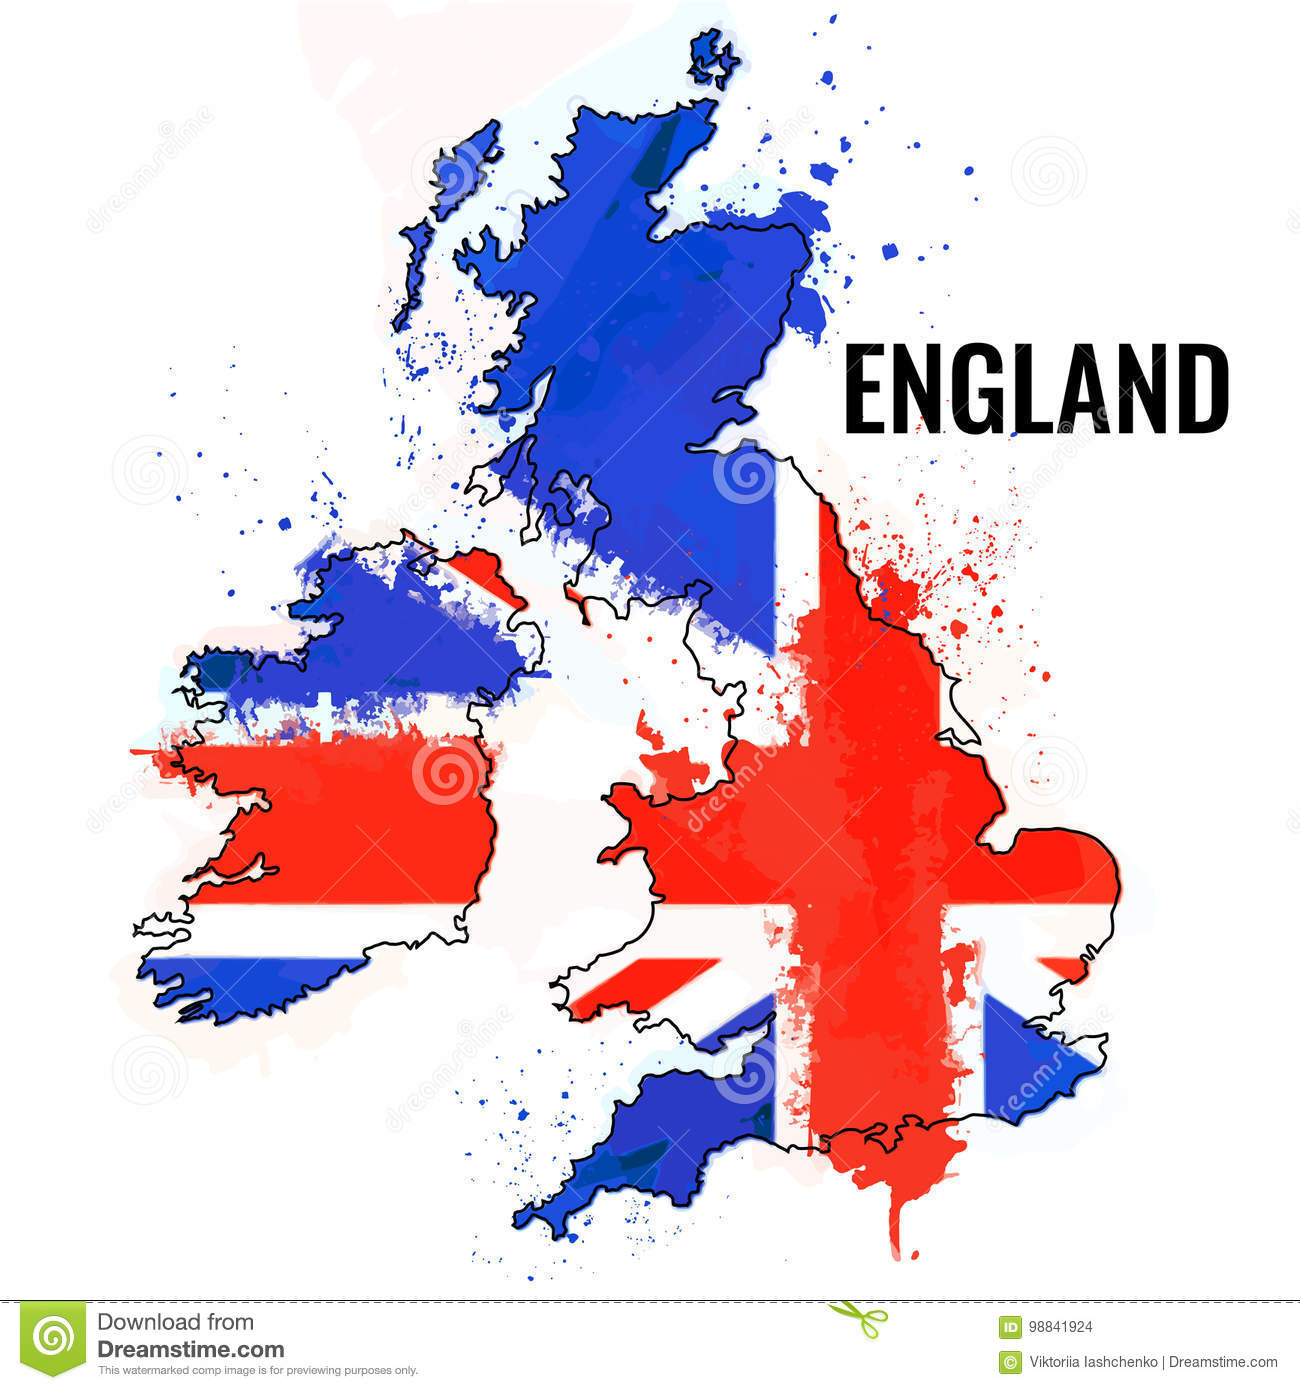 The Outline Of The England With A Watercolor Flag Inside